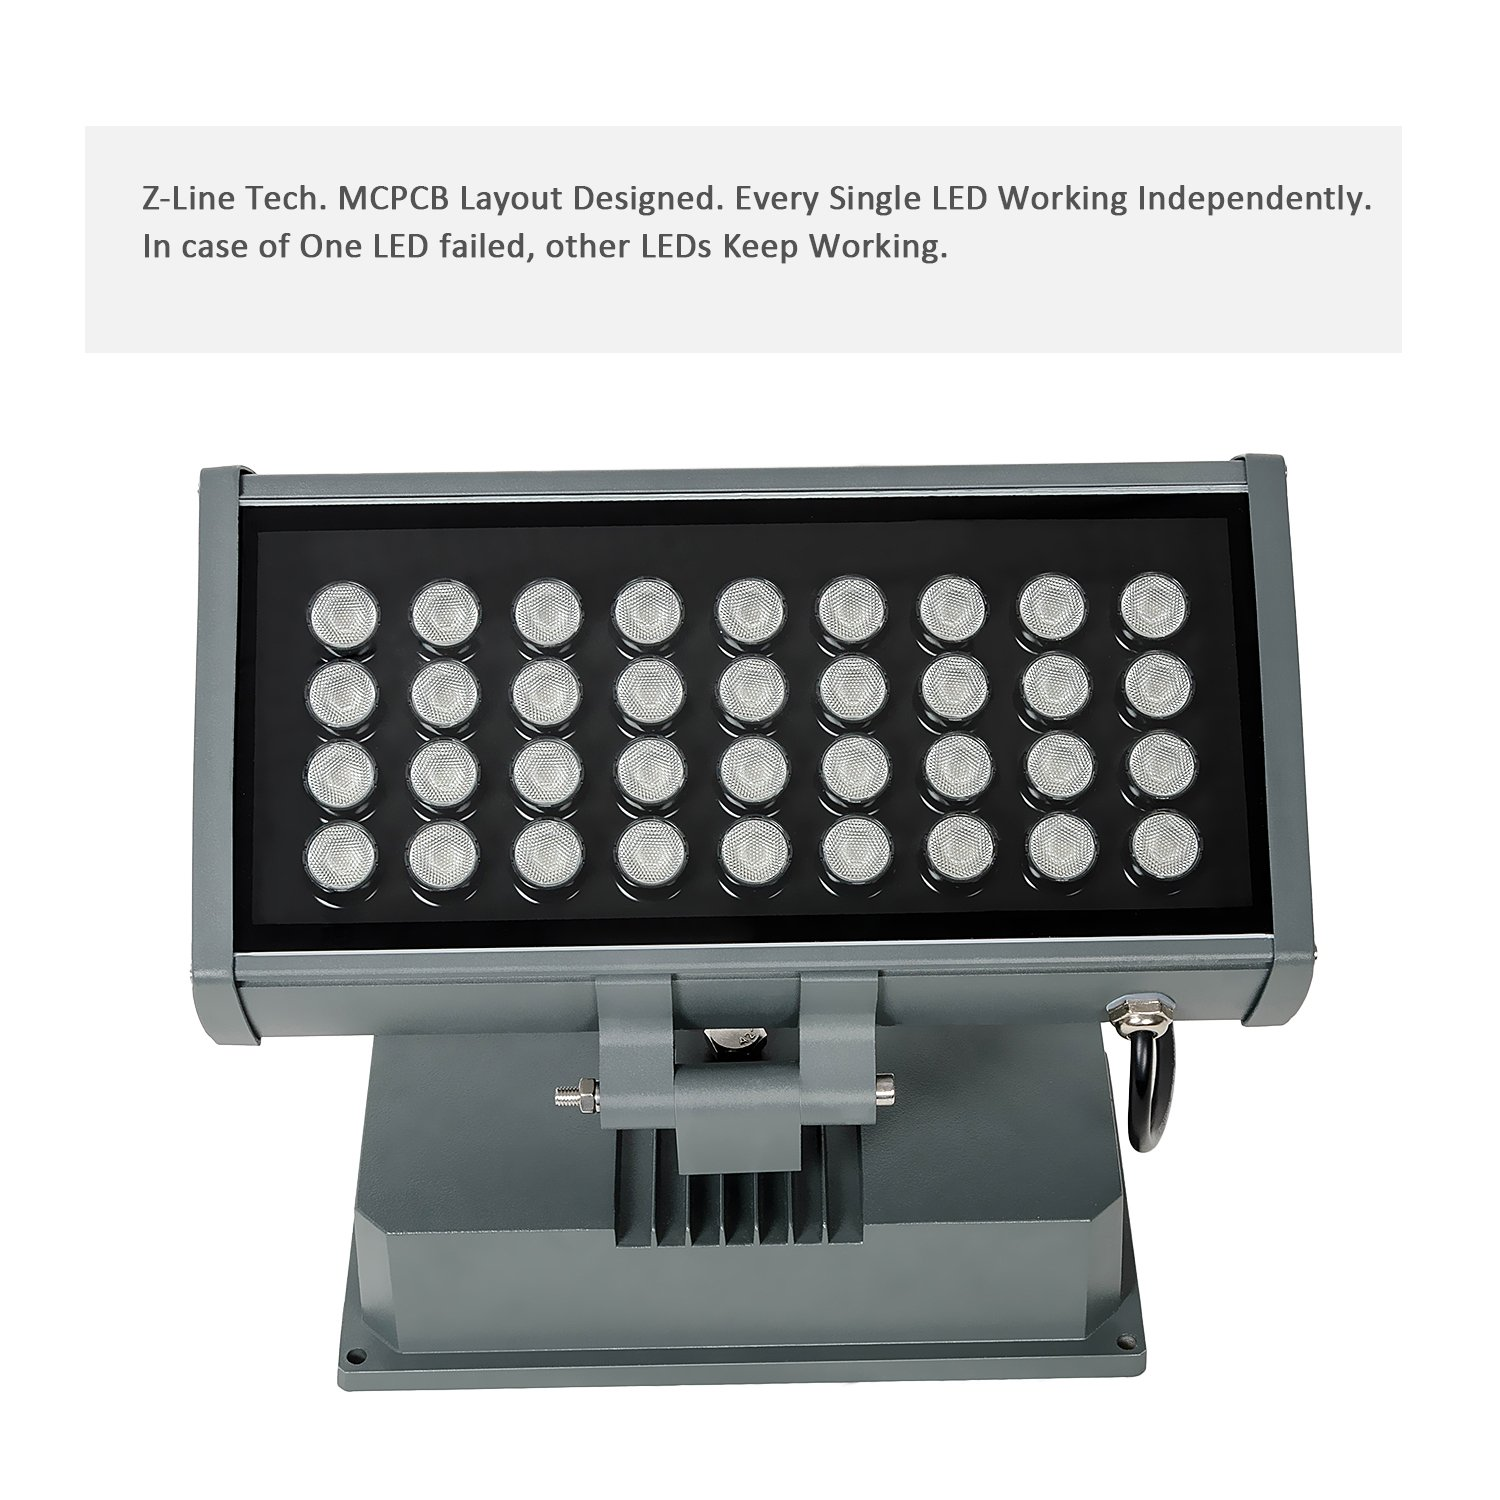 H-TEK 108W RGBW LED Wall Washer Light with RF Remote Controller, Color Changing LED Flood Light for Outdoor/Indoor Lighting Projects Hotels, Resorts, Casinos, Billboards, Building Decorations, Parties by H-TEK (Image #5)